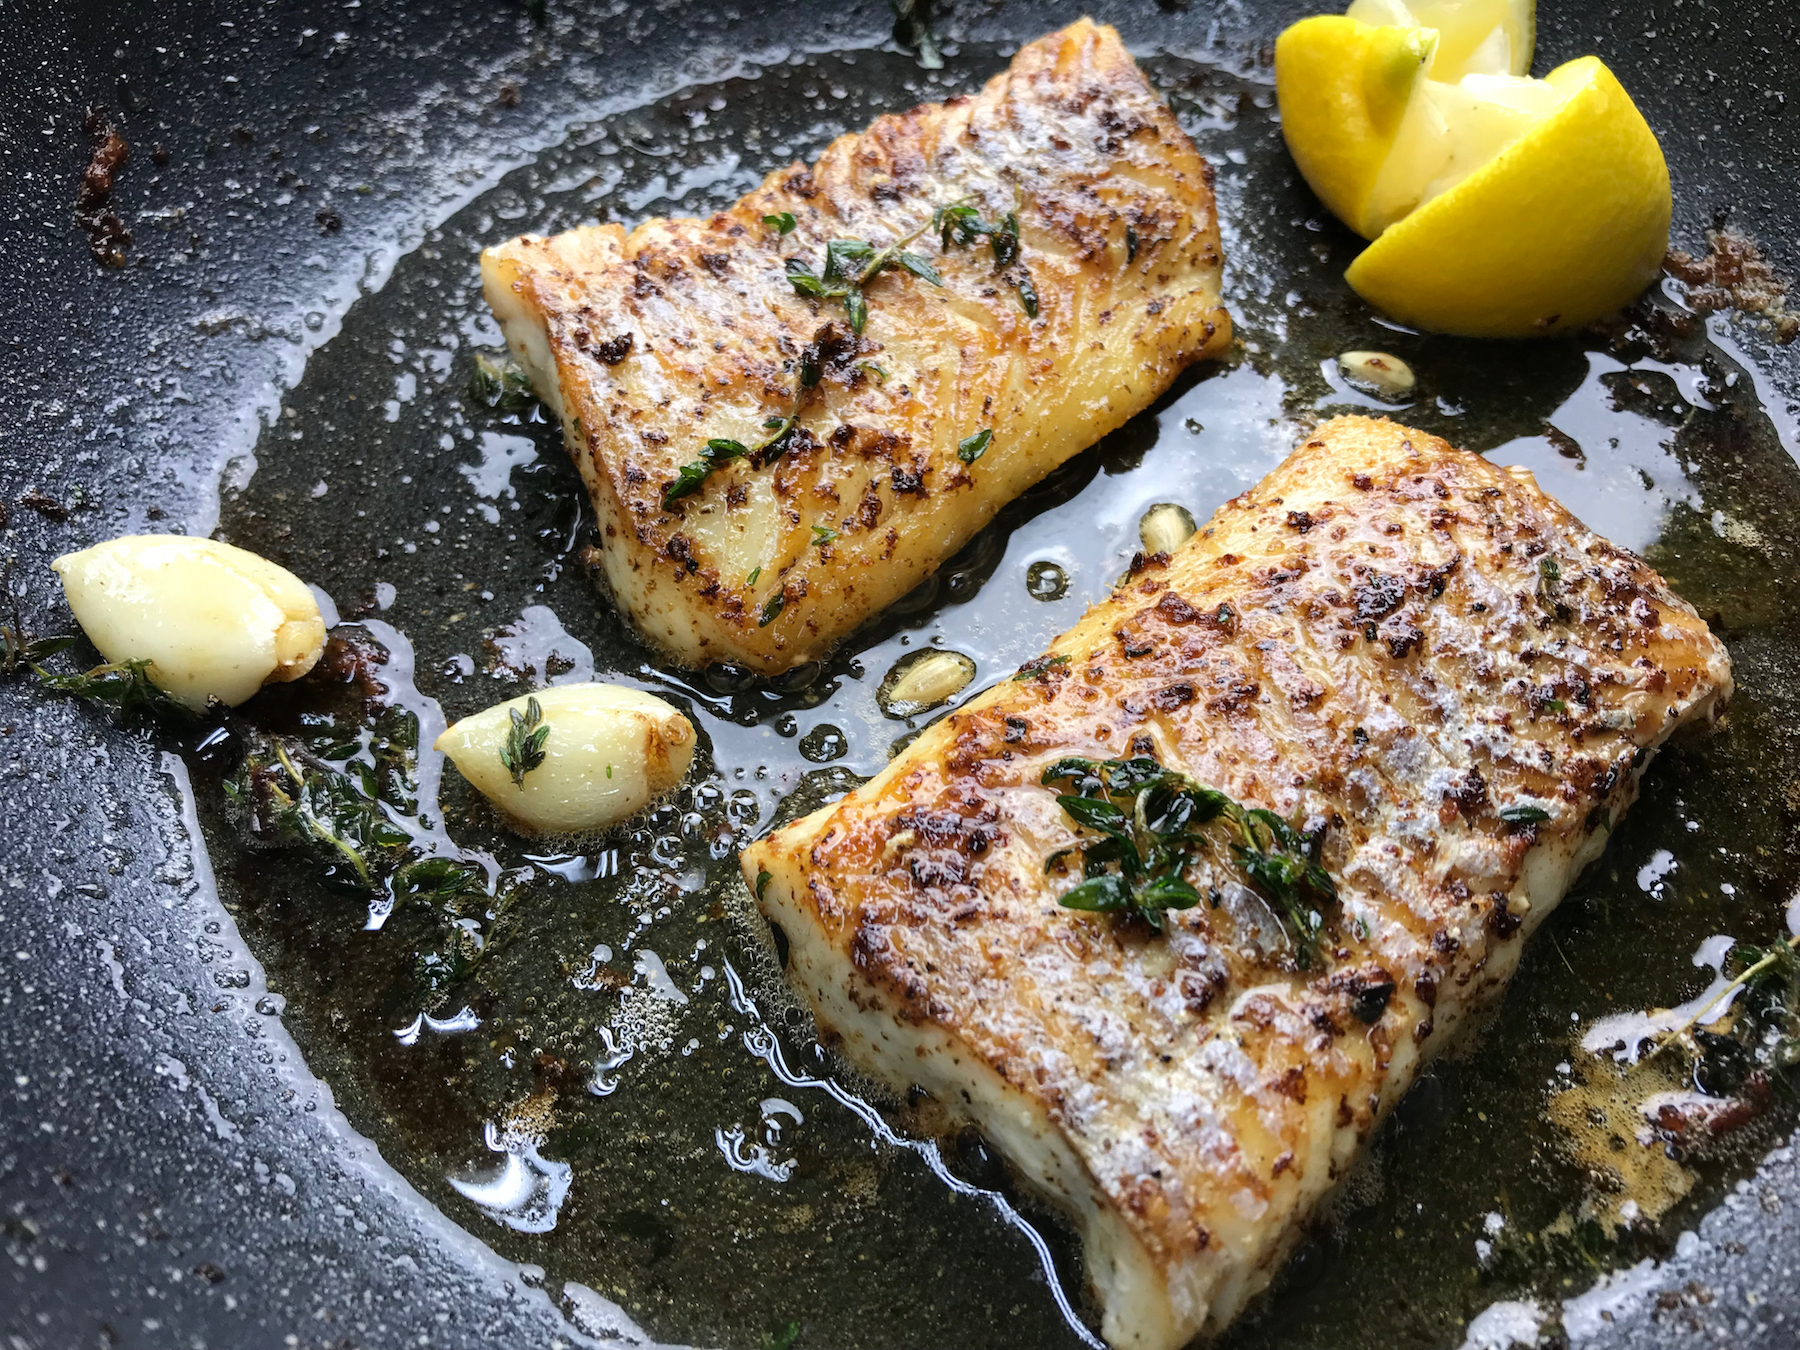 Front Burner Butter Basted Fish Pleases Picky Eater